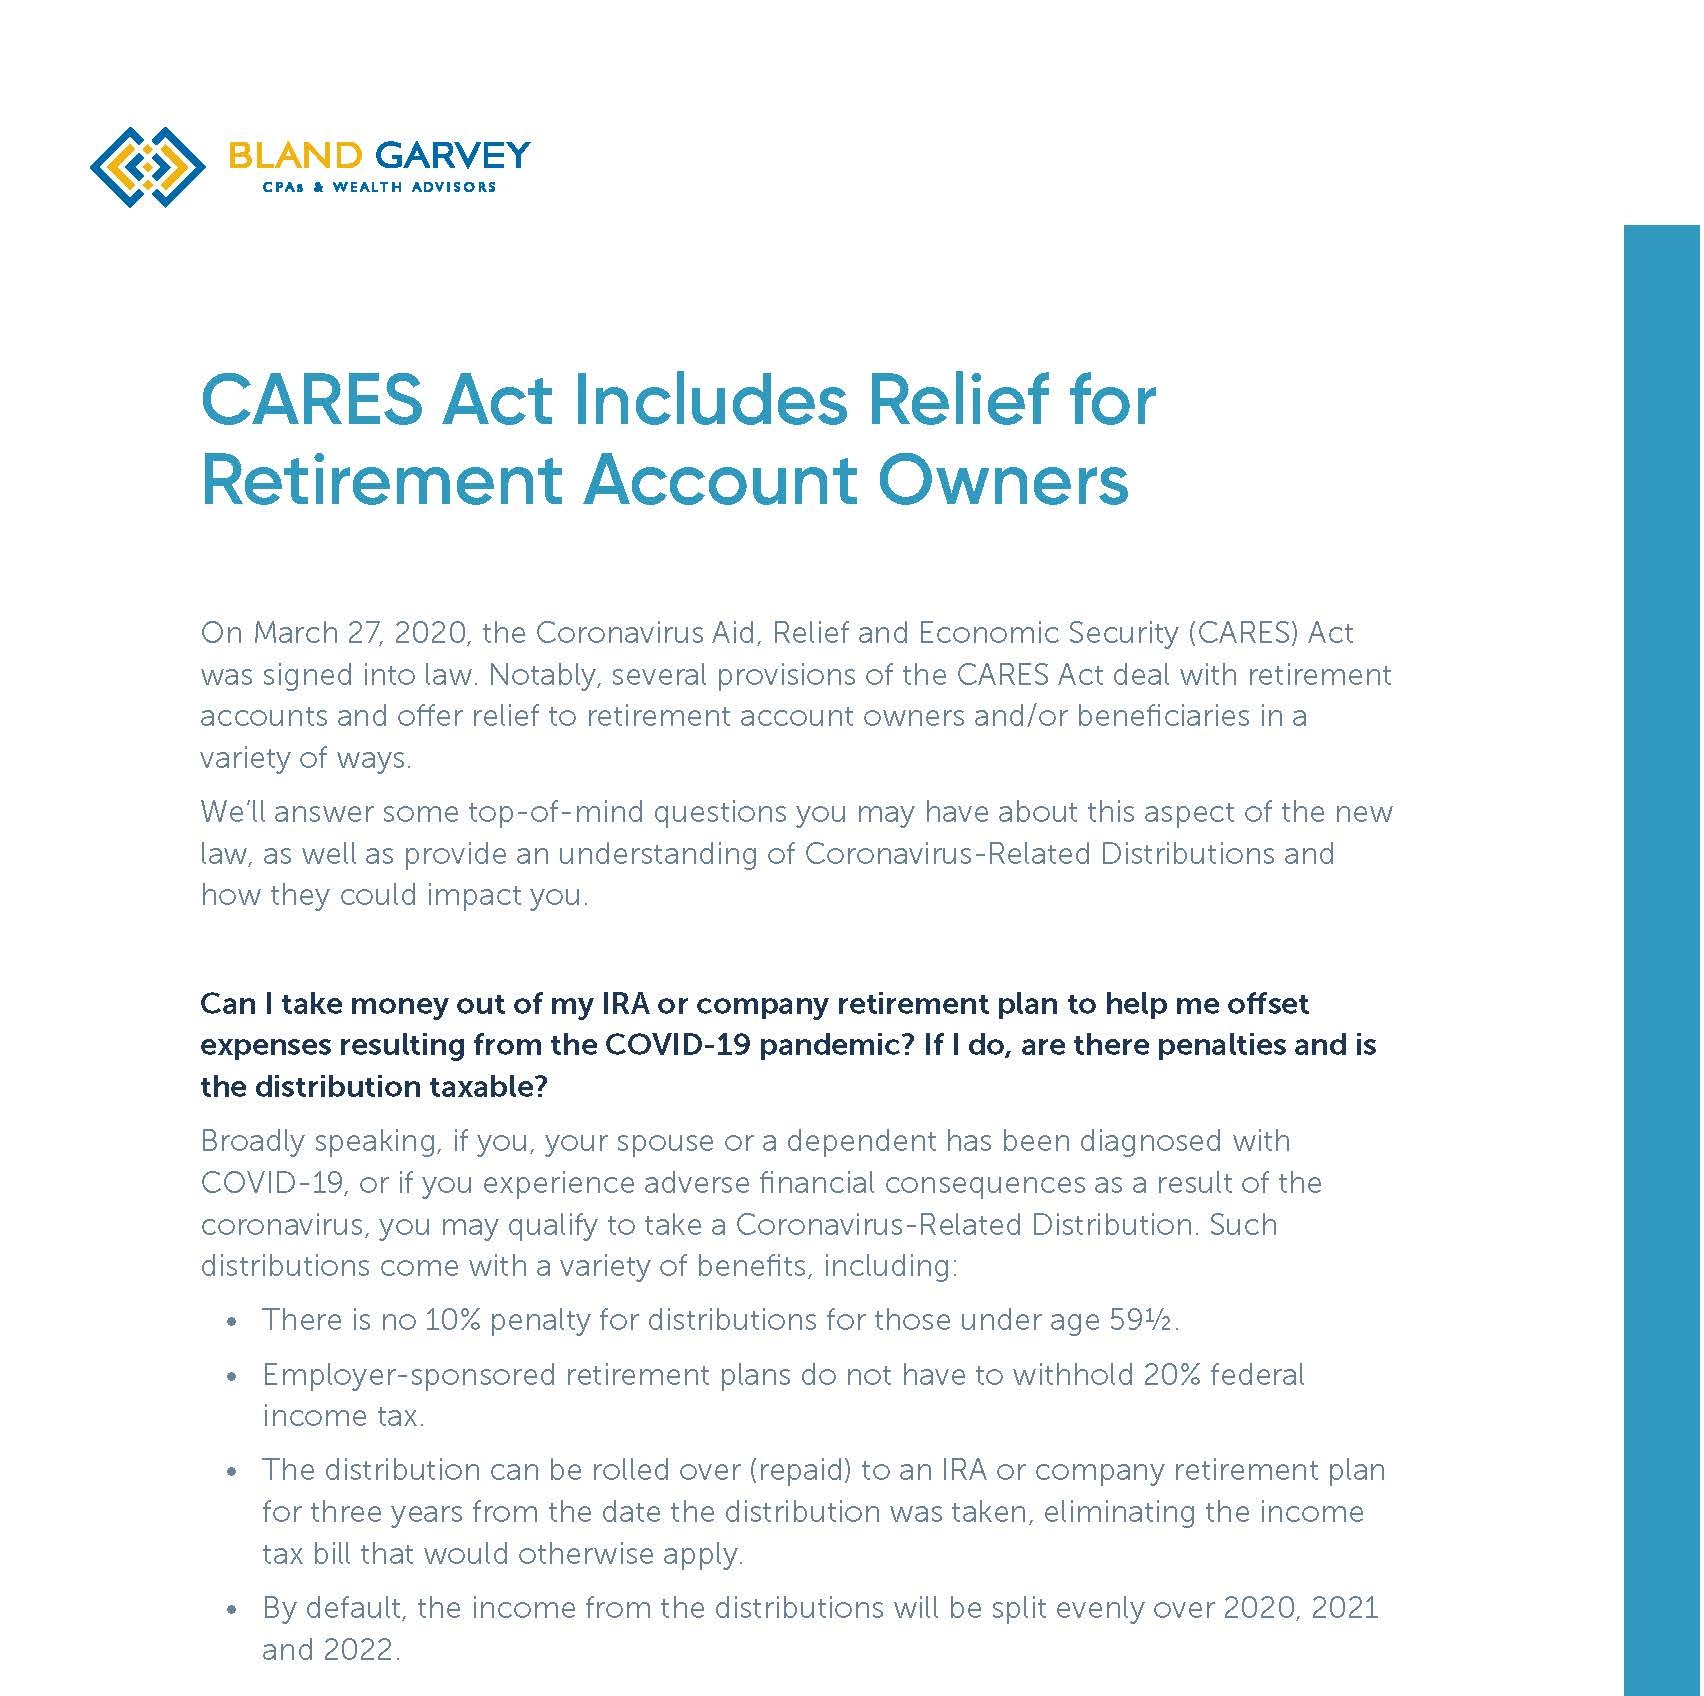 bland_garvey_cares_act_for_retirement_account_owners_page_1_crop.jpg